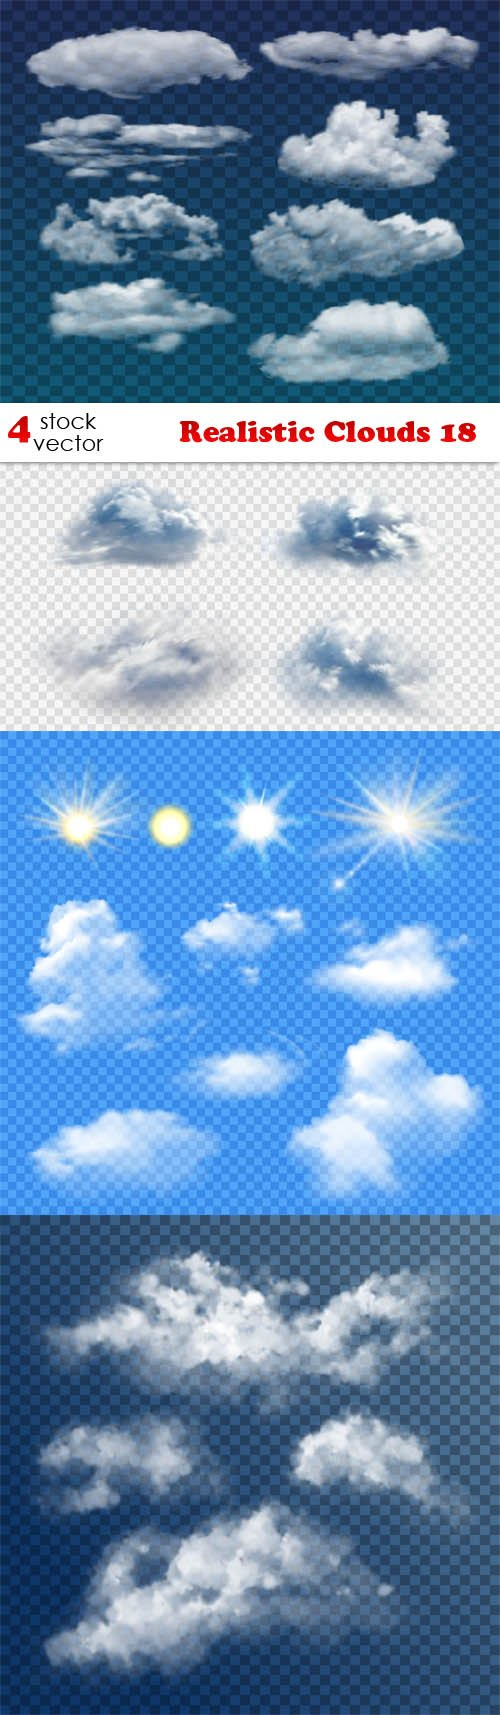 Vectors - Realistic Clouds 18